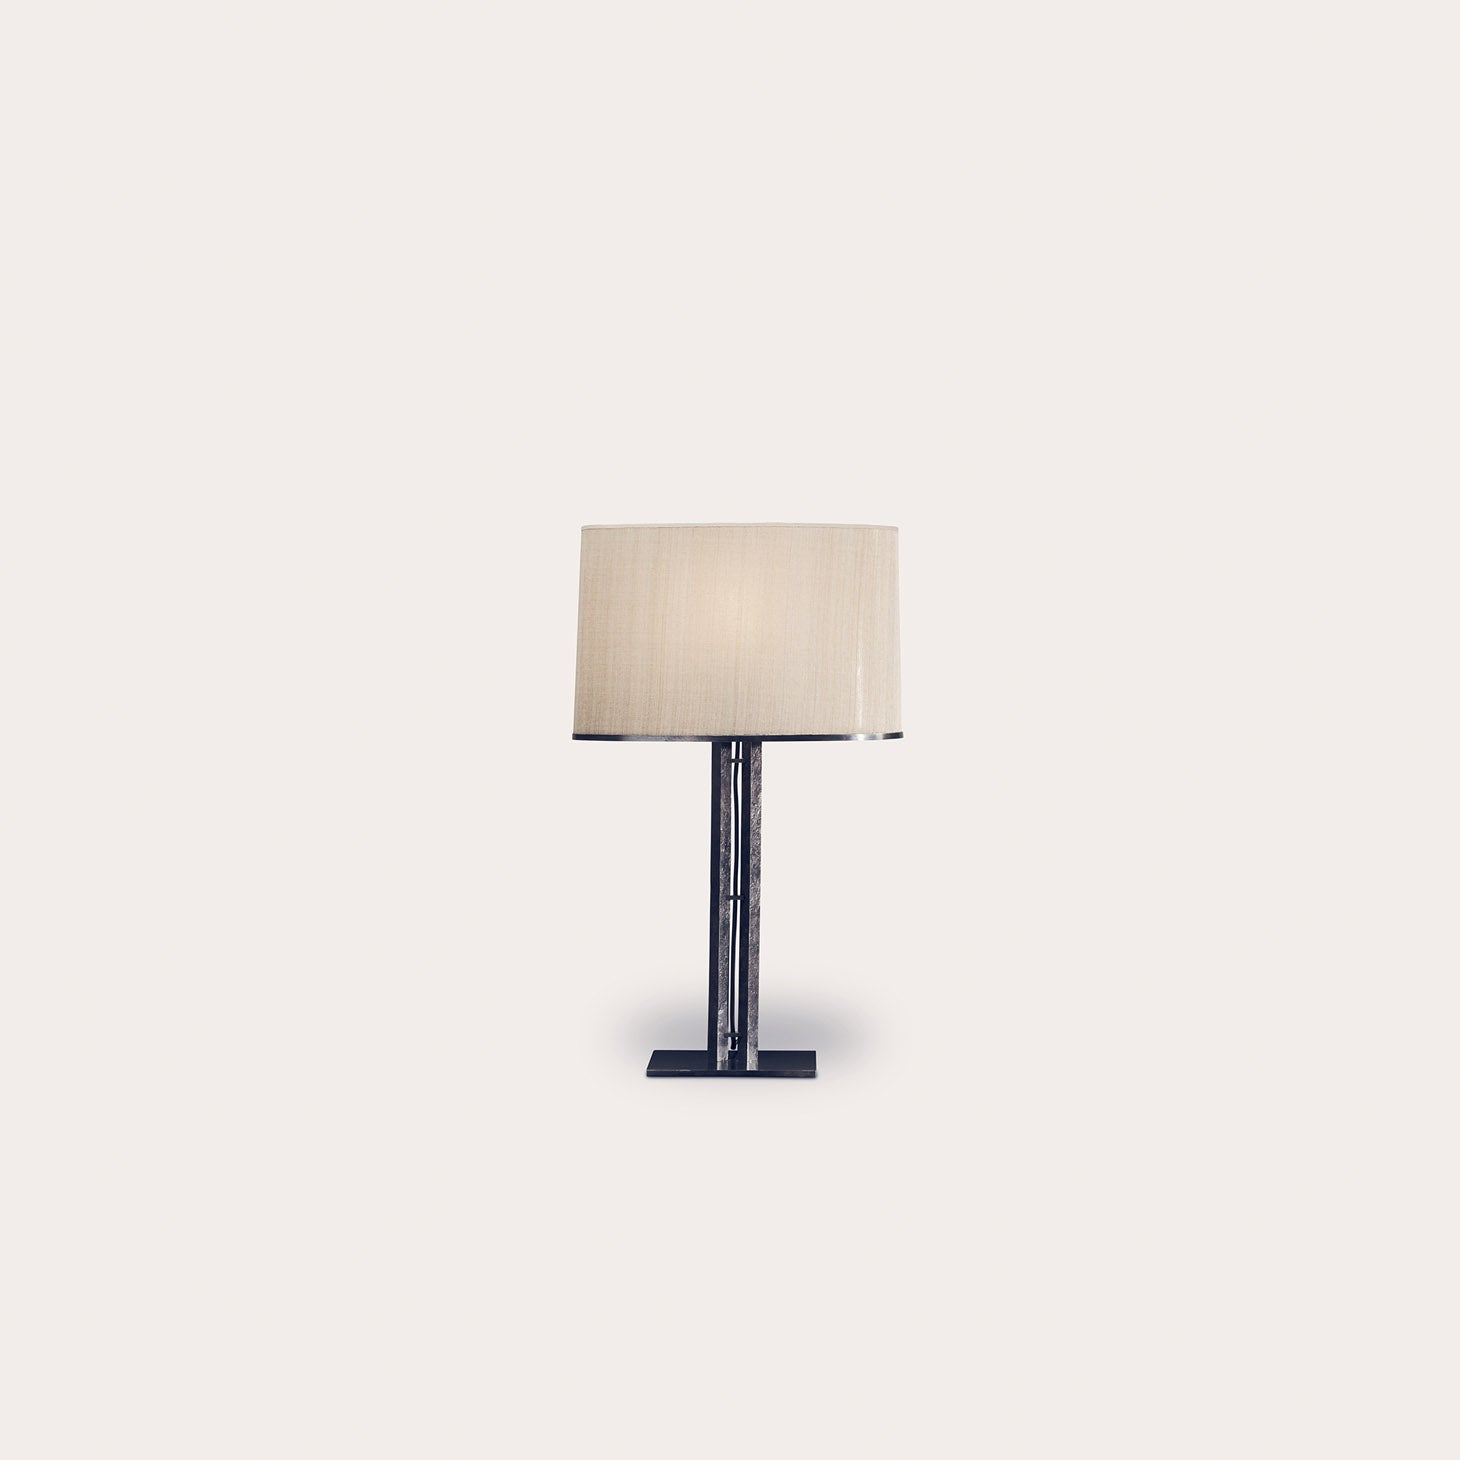 BAKAR Table Lamp Lighting Bruno Moinard Designer Furniture Sku: 773-160-10001